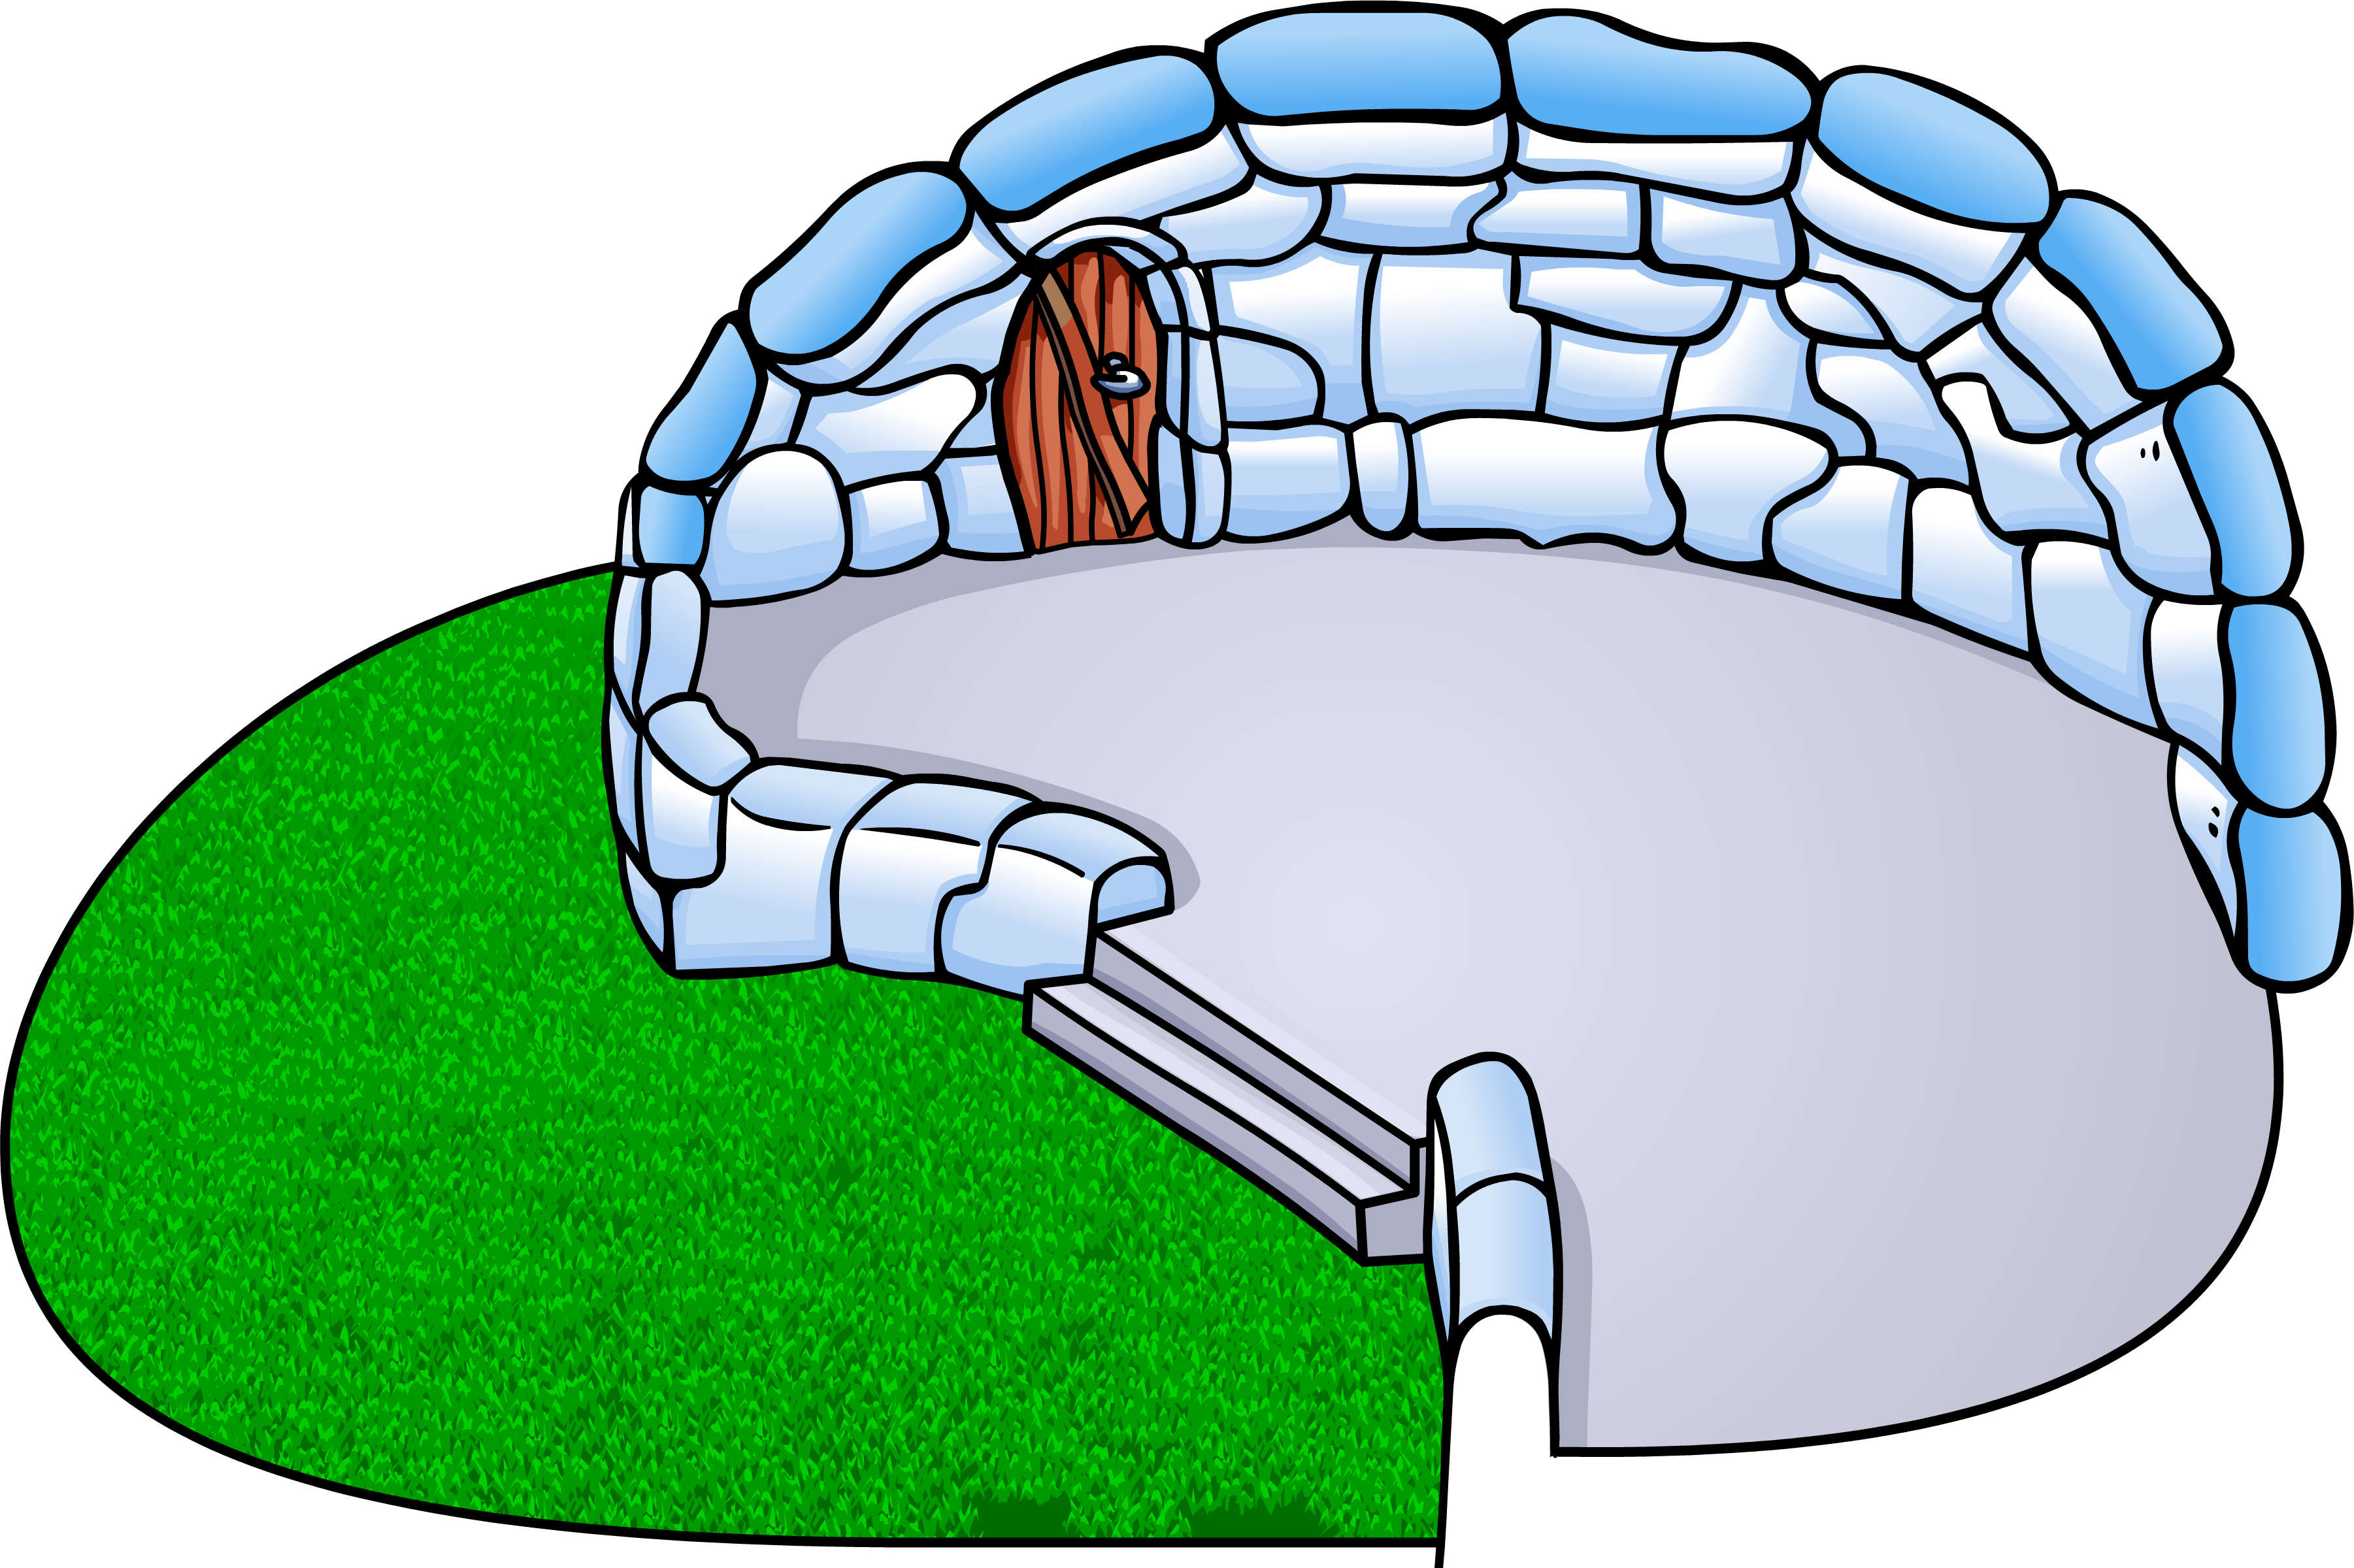 Backyard club penguin rewritten. Igloo clipart real